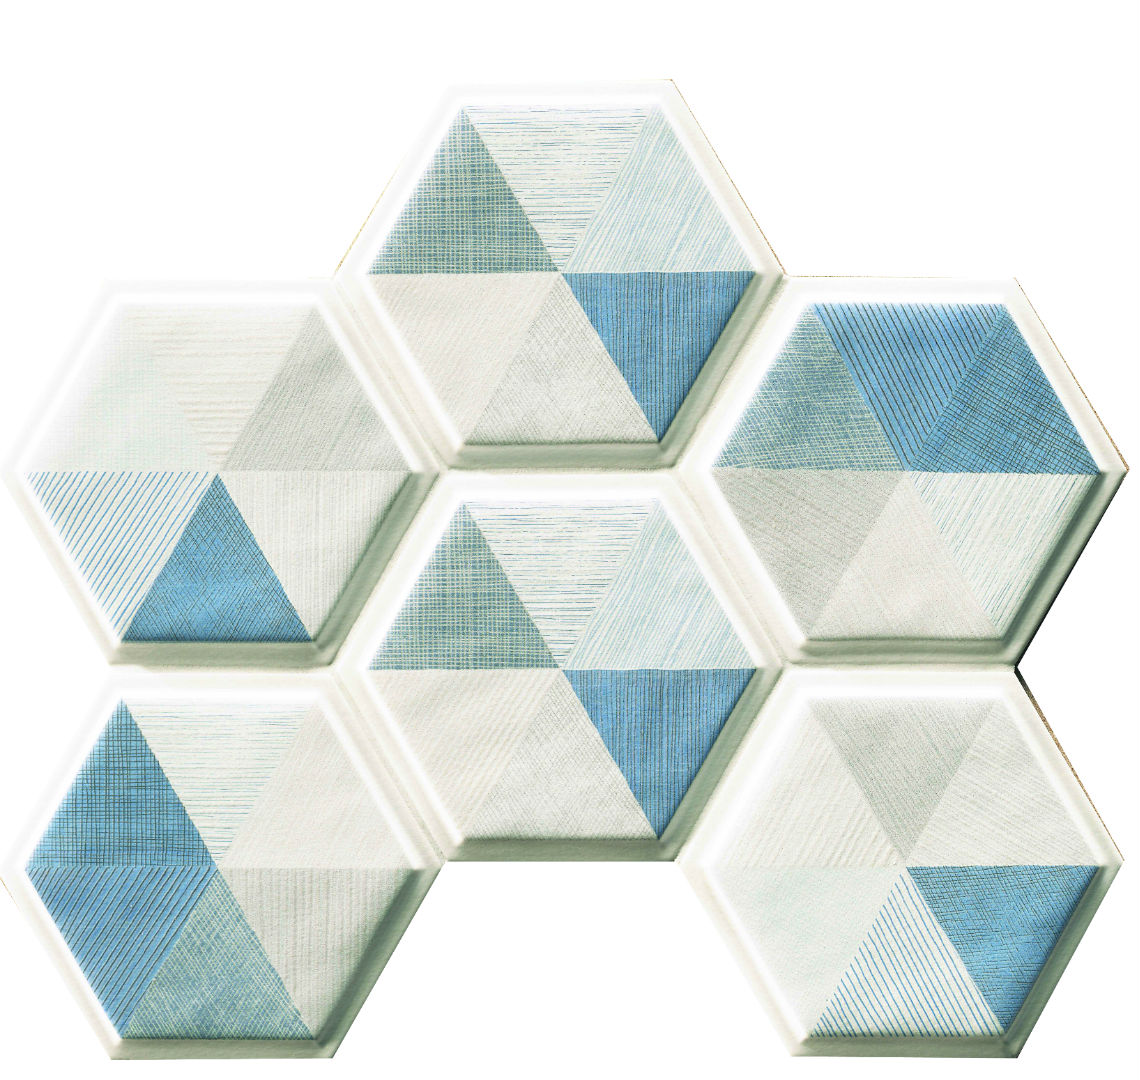 Natucer New Panal Decor Mood Hex 15x17